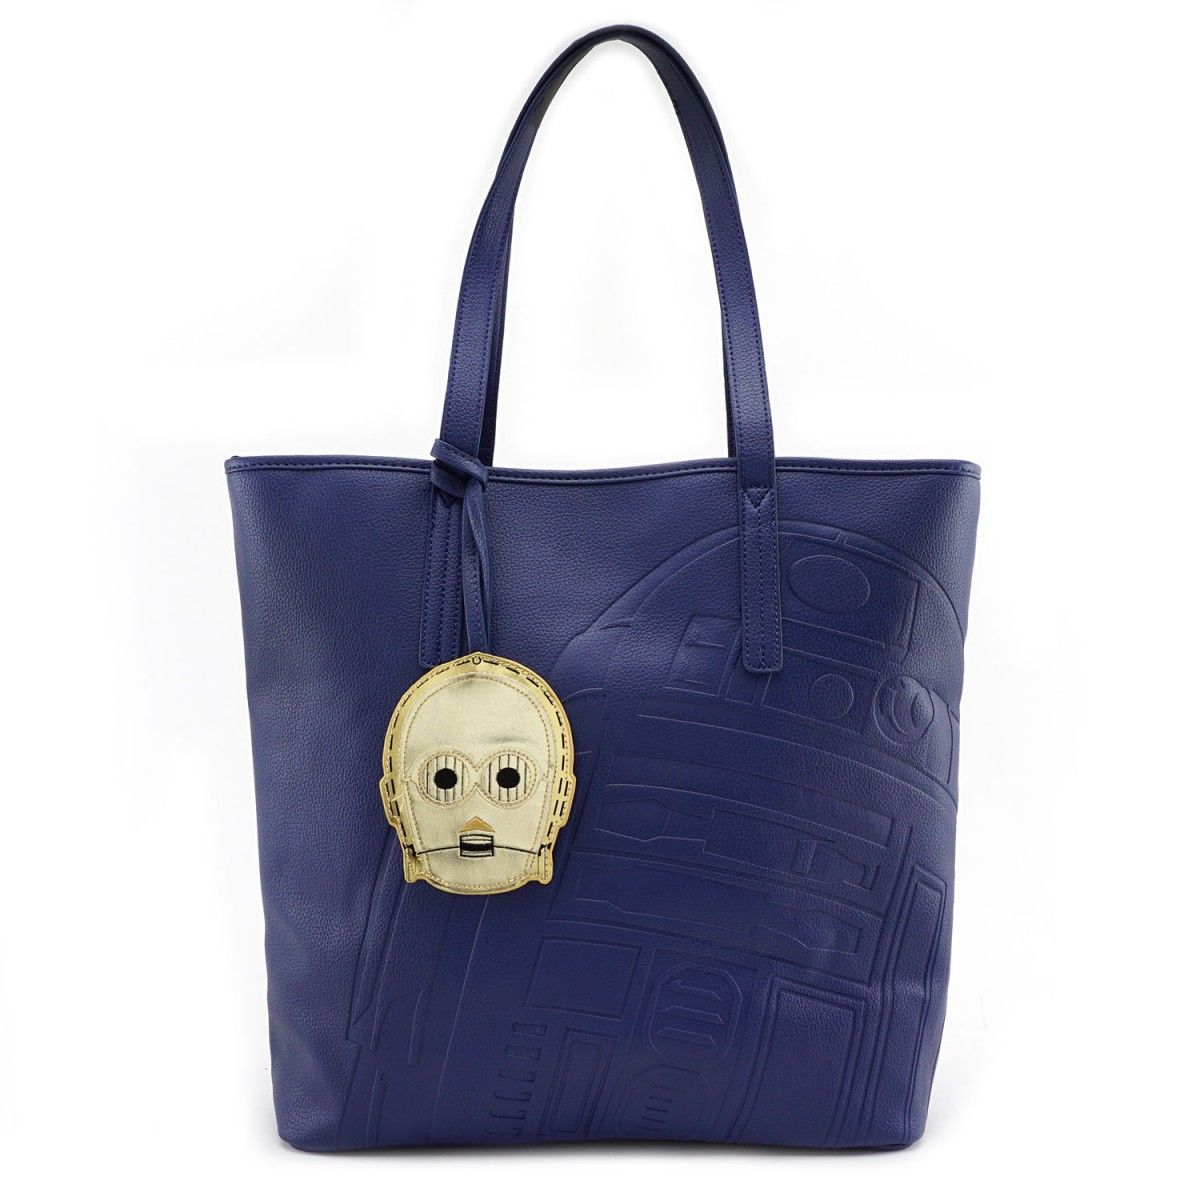 18e54b545553 Loungefly x Star Wars R2-D2 Debossed Tote Bag - Totes - Bags